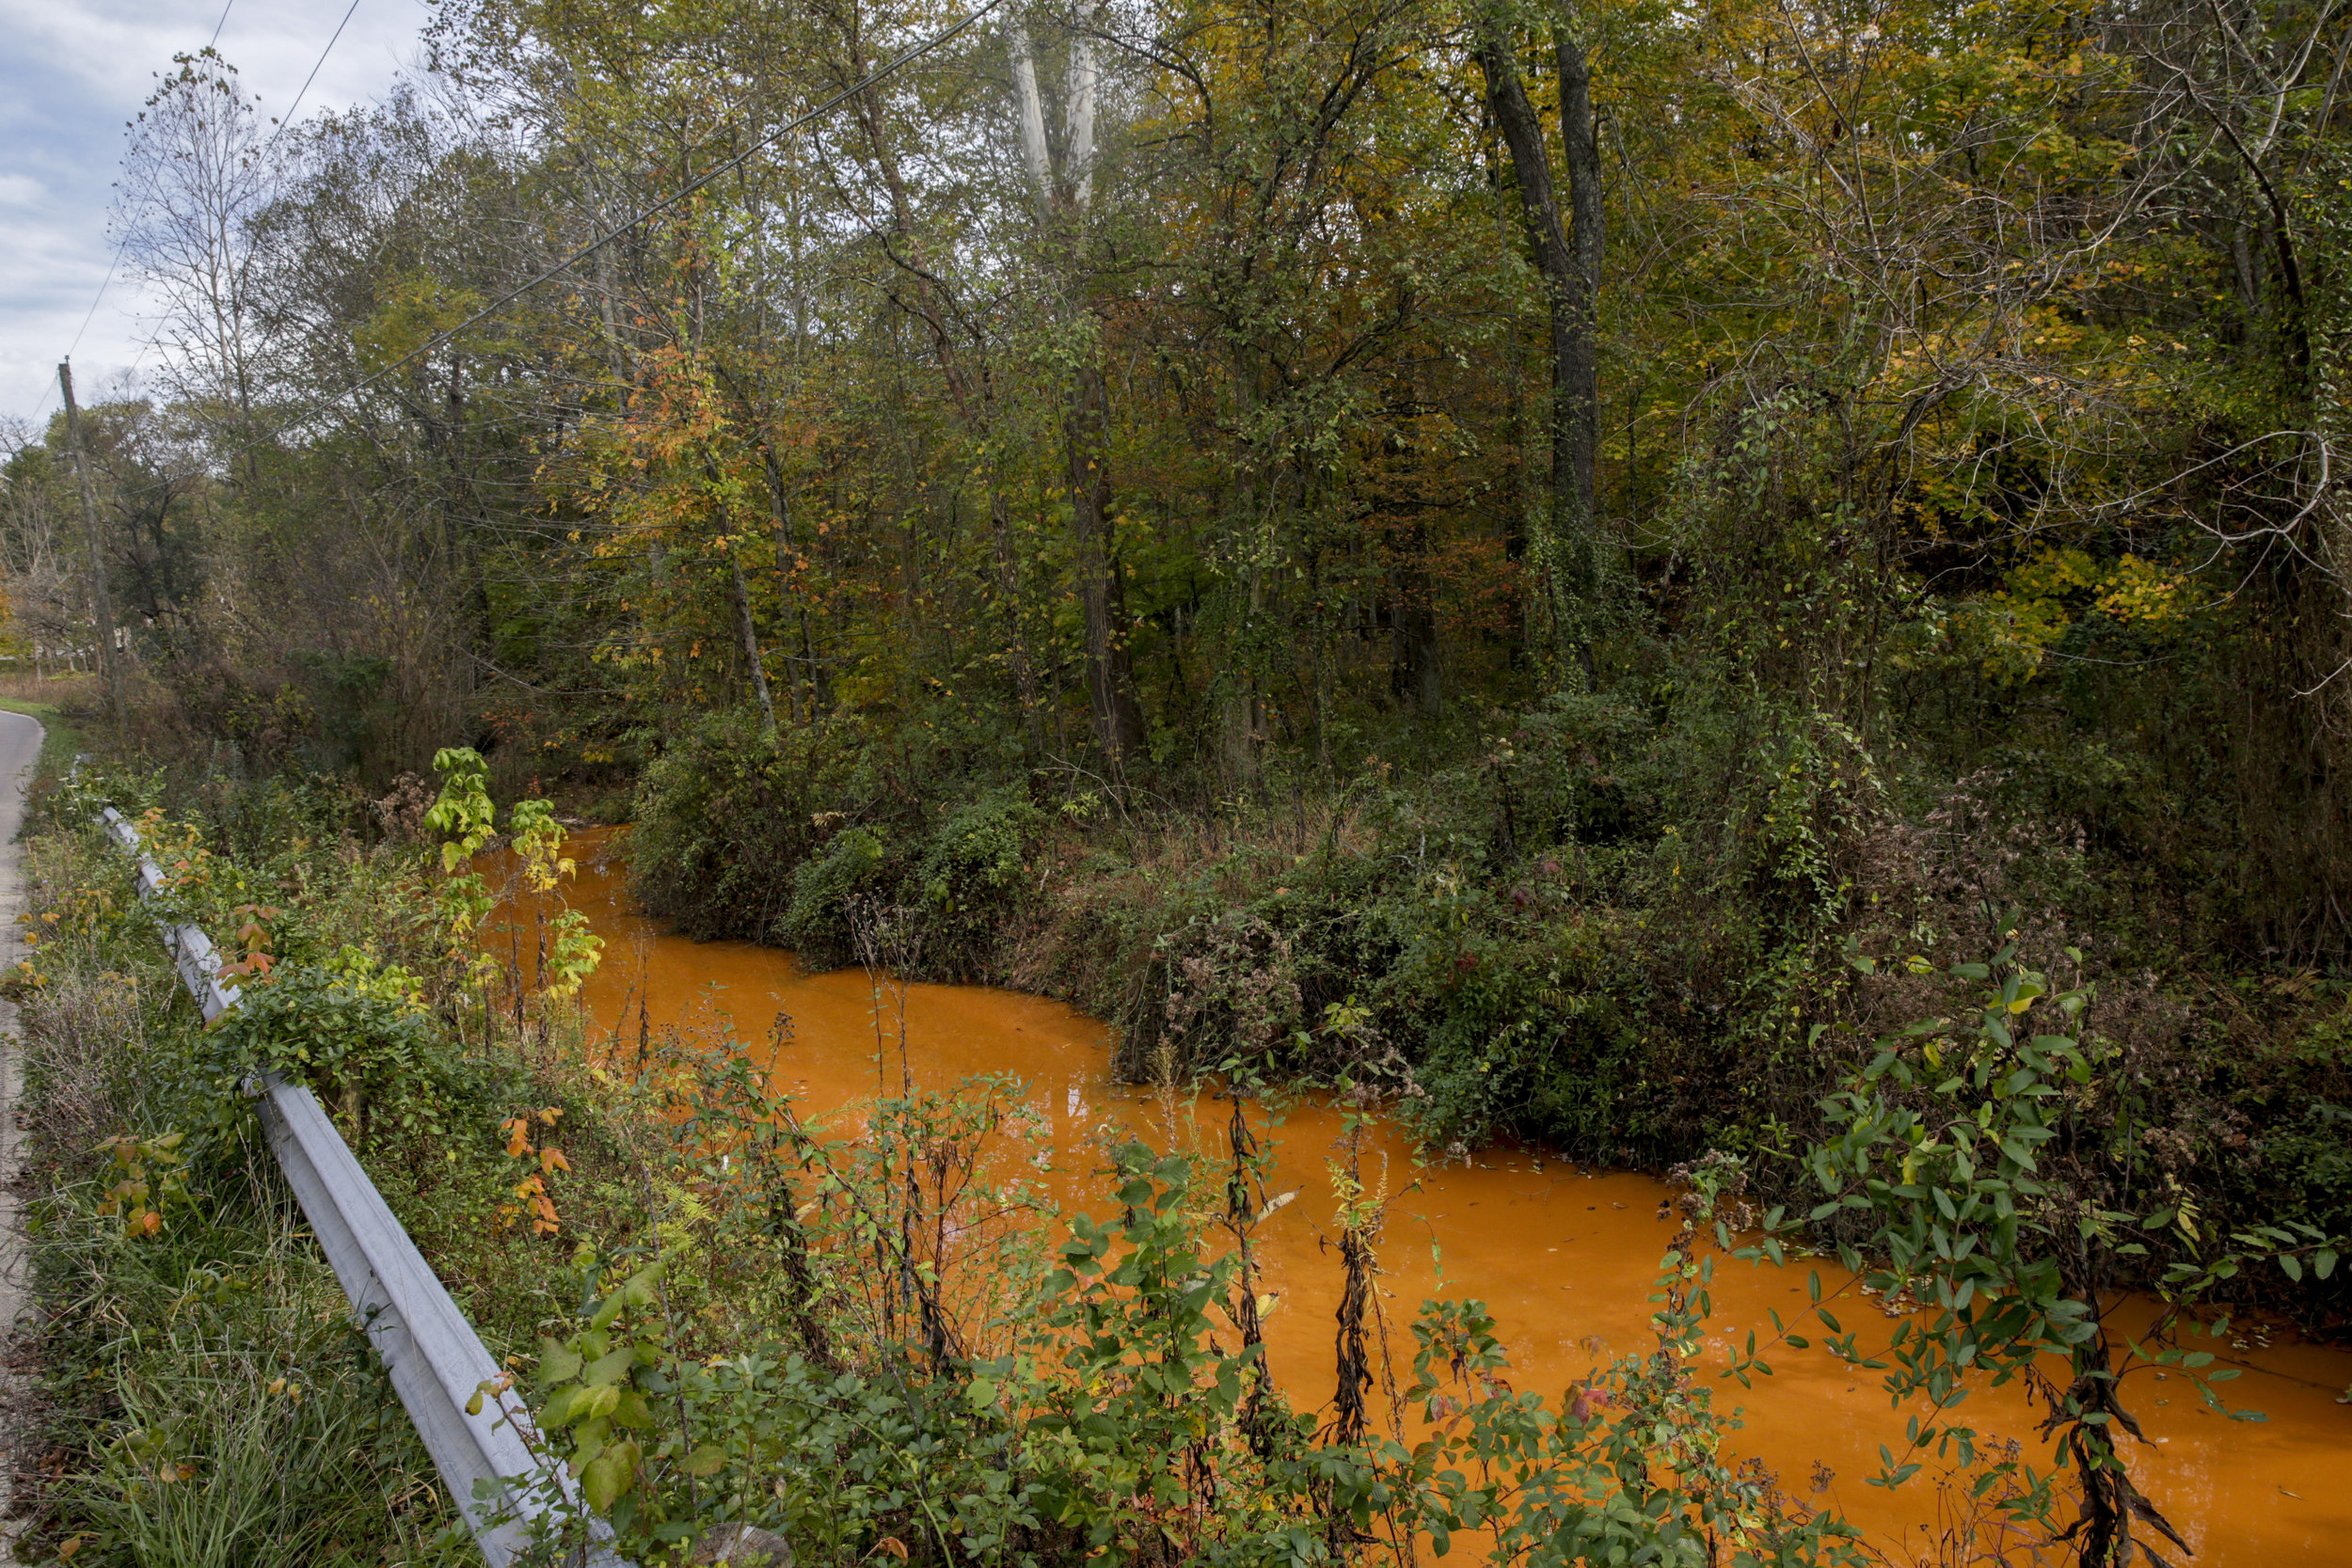 Hewett Fork is located in the unincorporated community of Carbondale in Waterloo Township in western Athens County. Polluted water flows out of a mine and goes through a mineral doser before entering the creek. Mining began in Carbondale in 1867, with all remaining coal mines closing years ago.